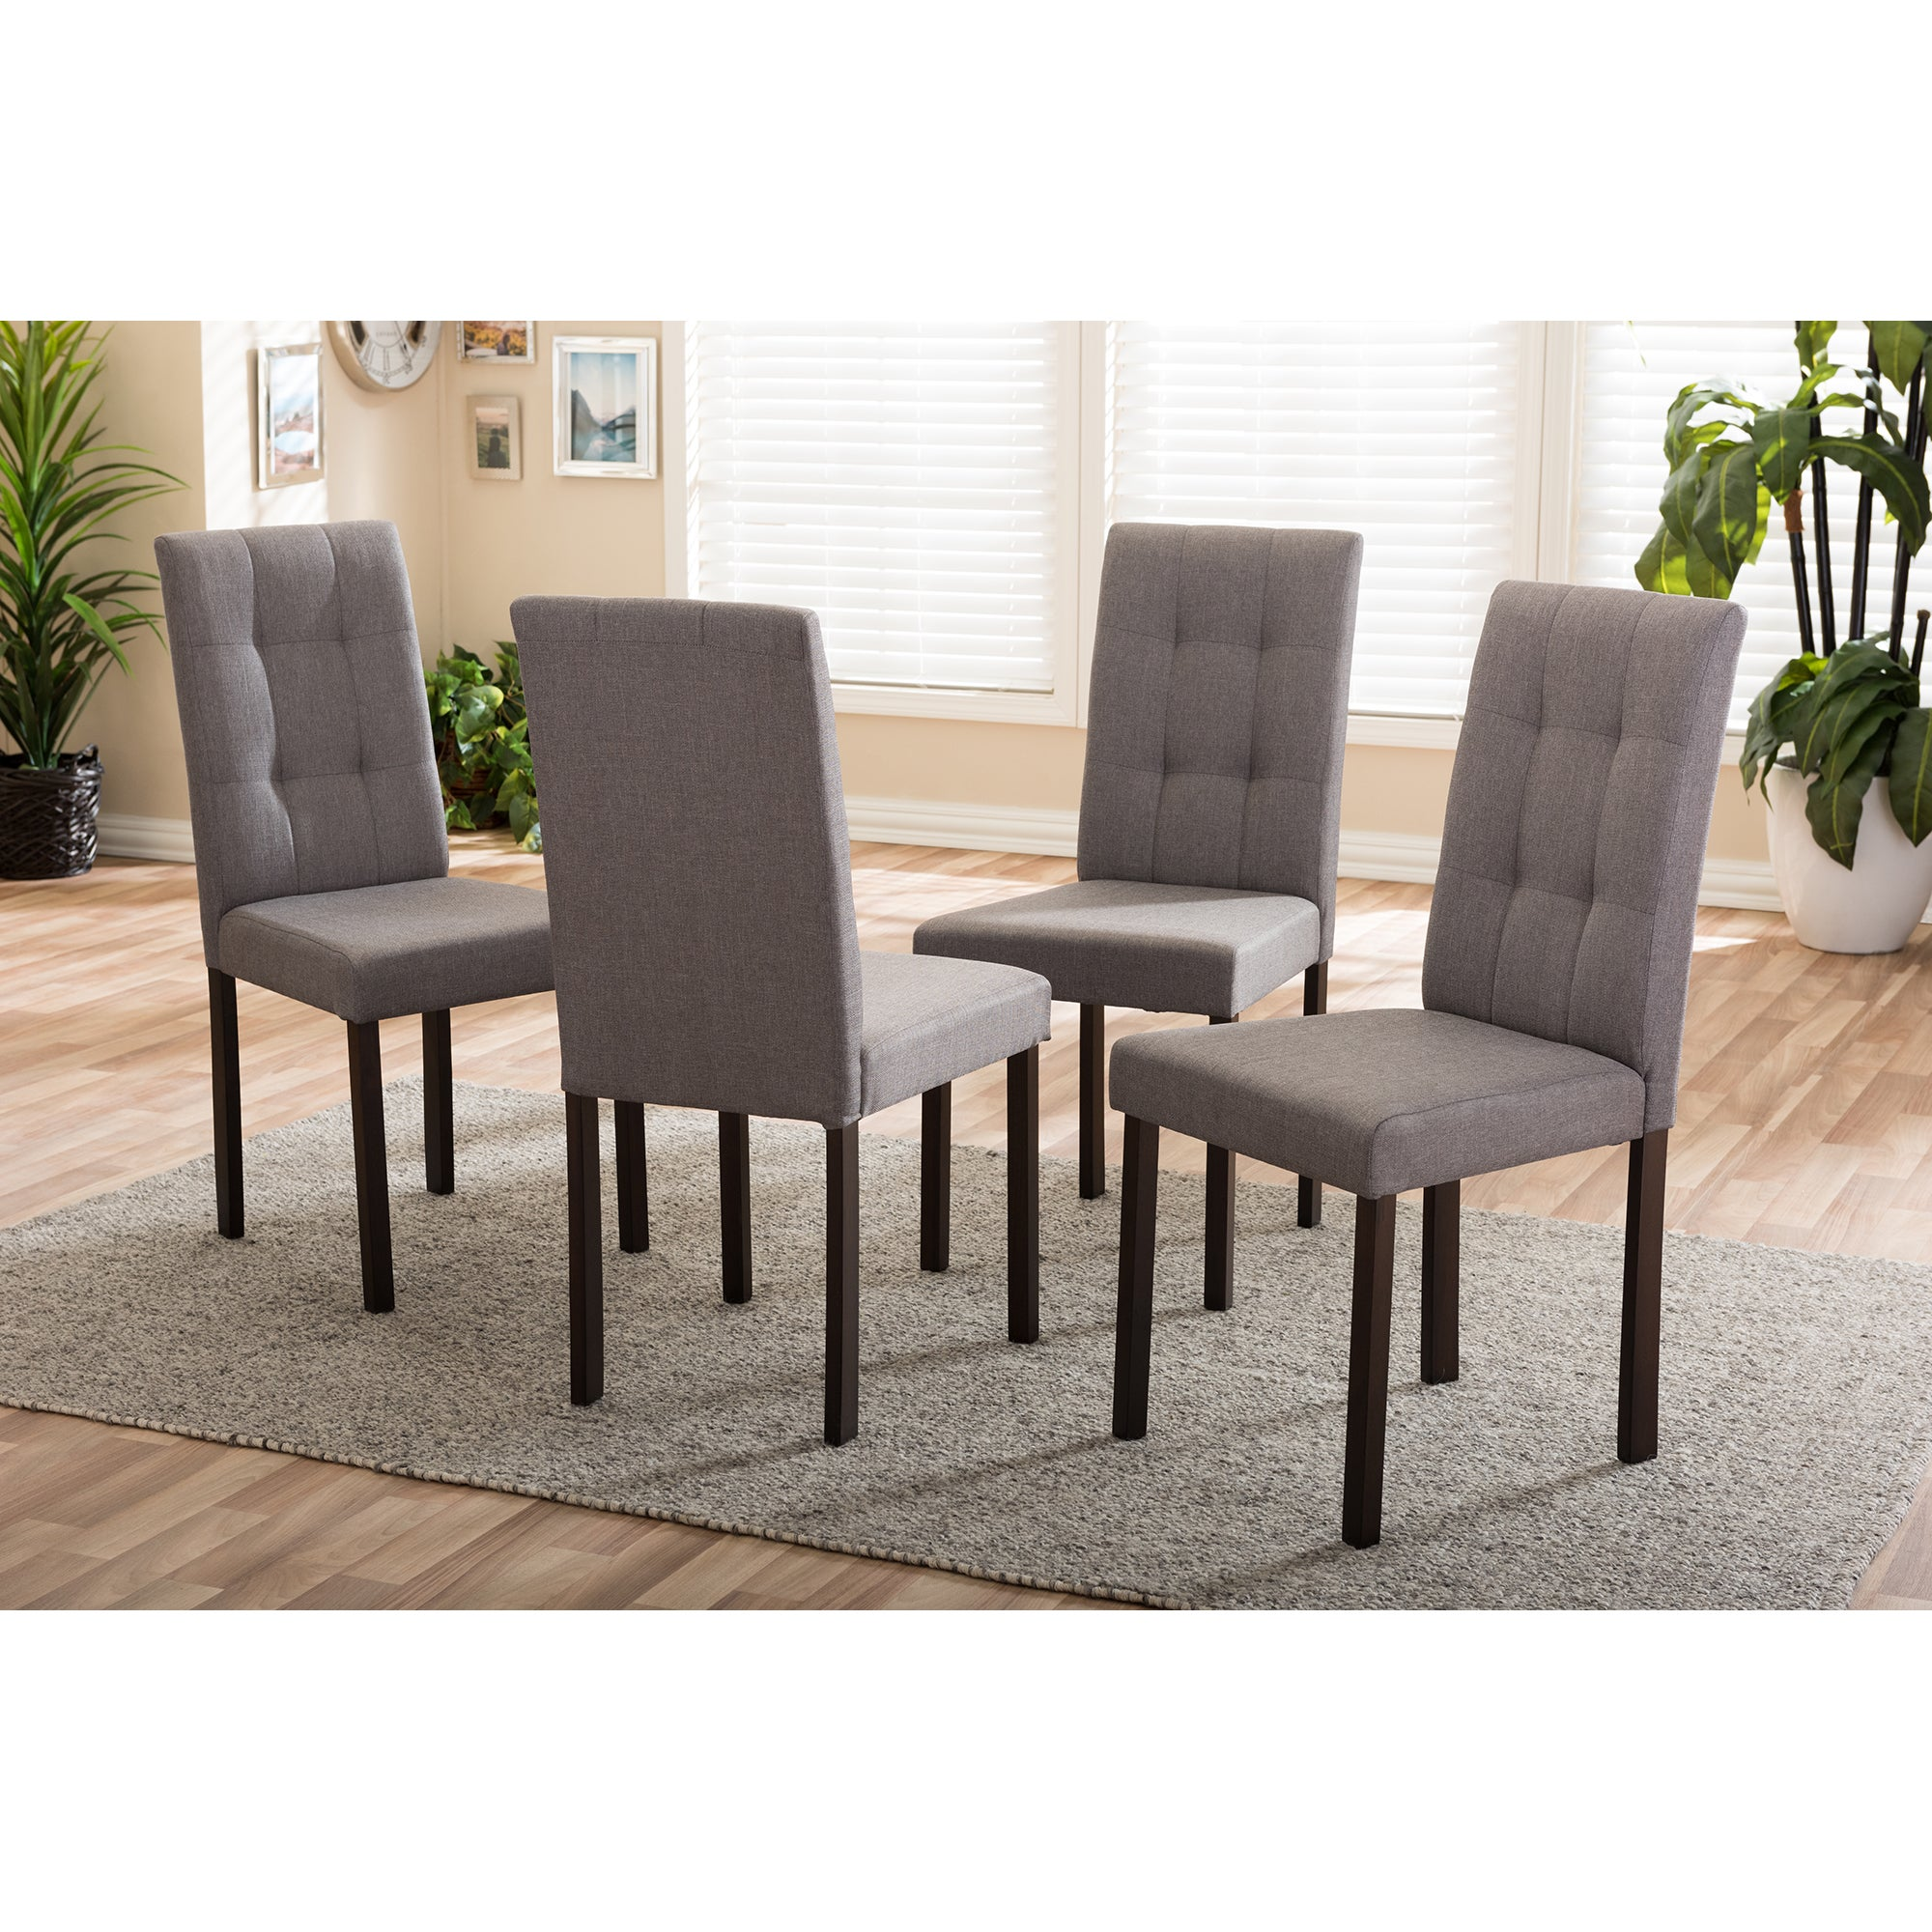 Porch Den Indiana Grey Fabric Upholstered Grid Tufted Dining Chairs Set Of 4